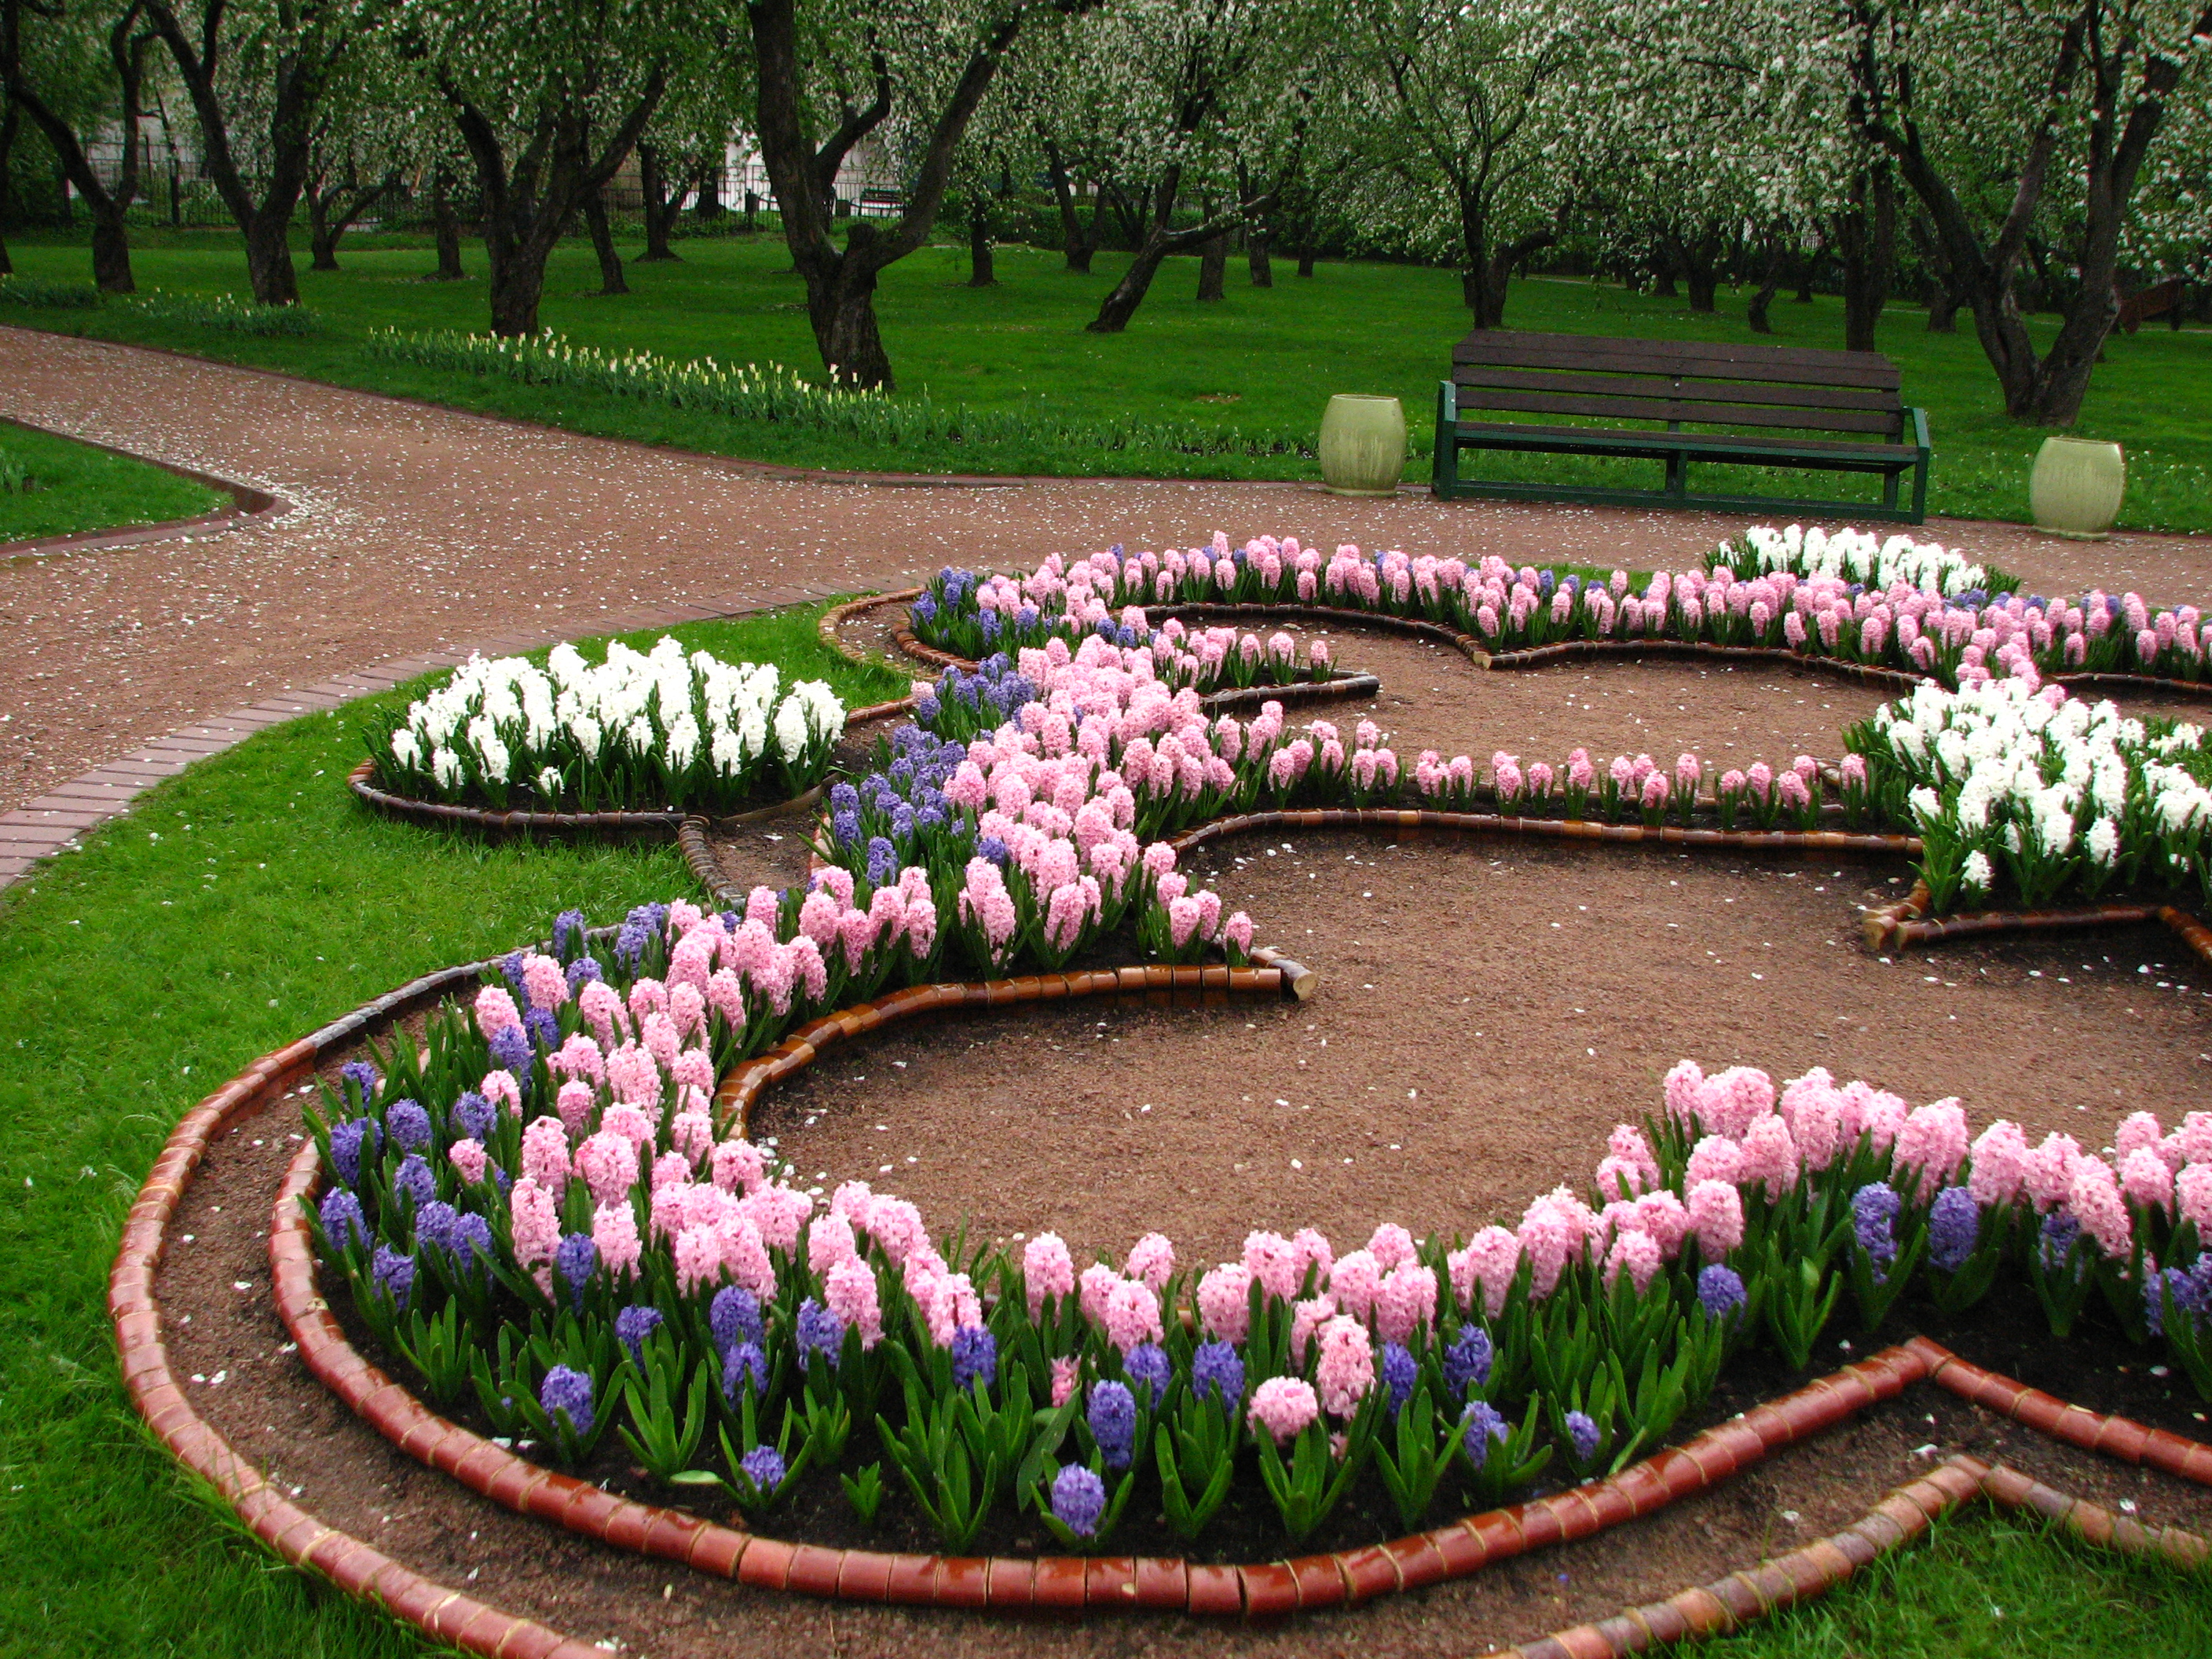 file hyacinthus in a flowerbed 02 jpg wikimedia commons. Black Bedroom Furniture Sets. Home Design Ideas